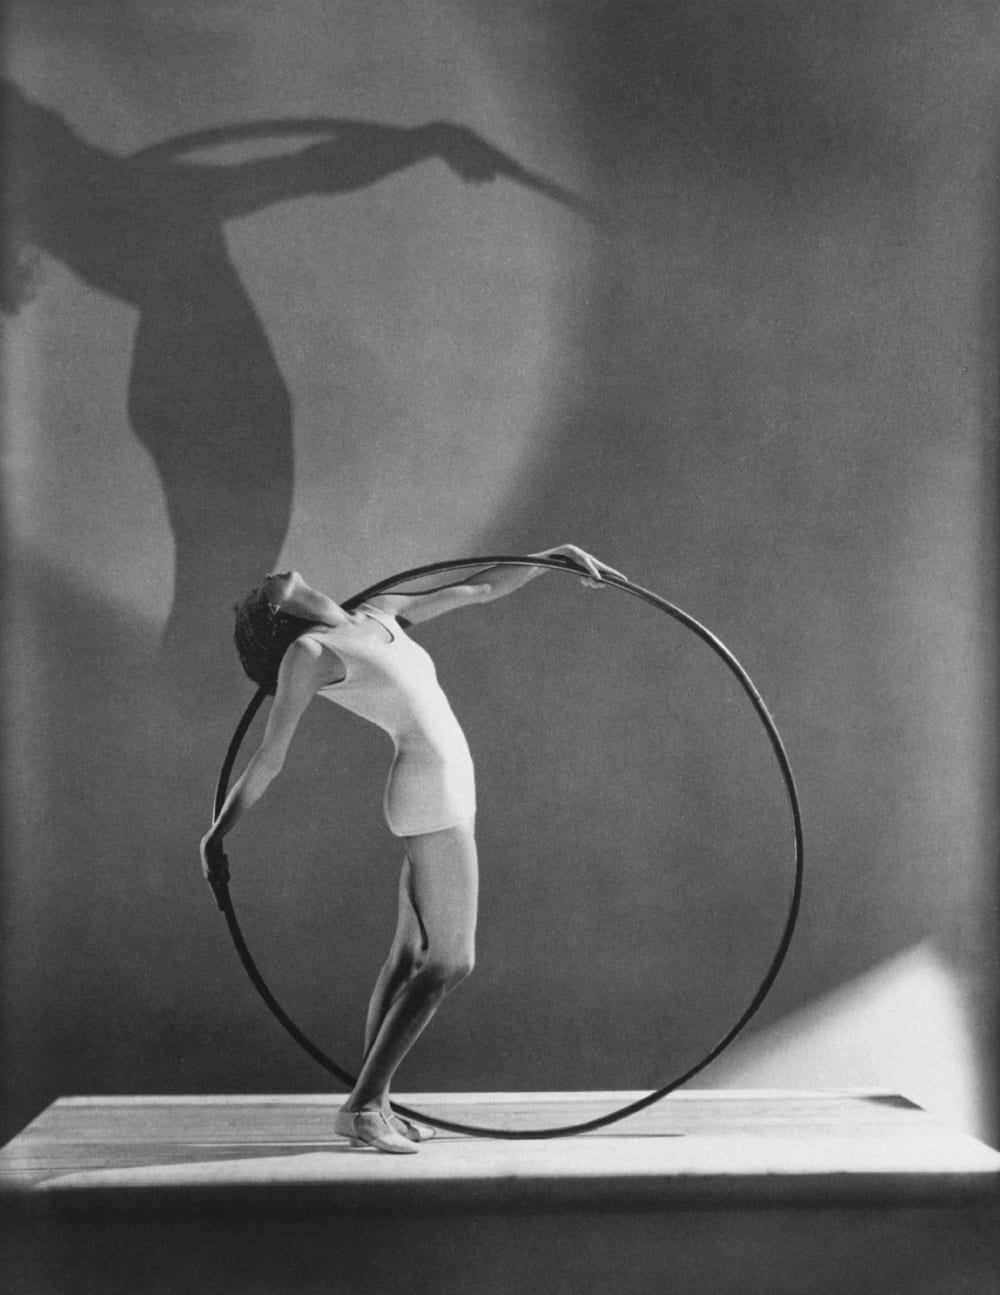 George Hoyningen-Huene, Swimwear With Hoola Hoop, Miss E, Carise